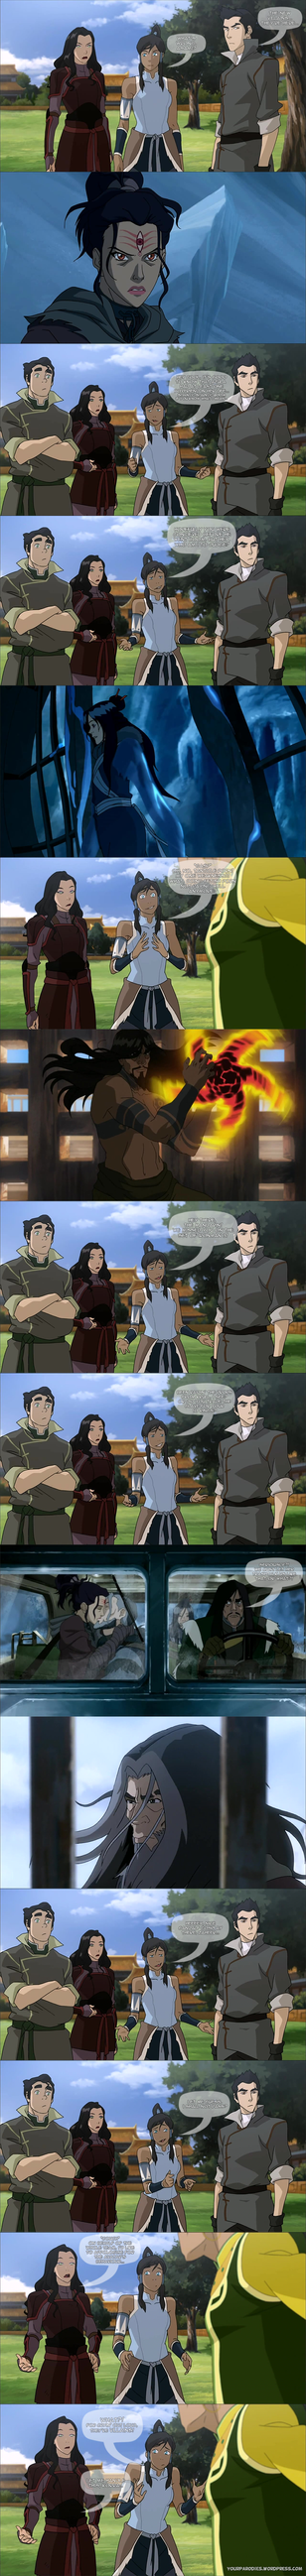 Legend of Korra - Enter the Fantastic Four by yourparodies